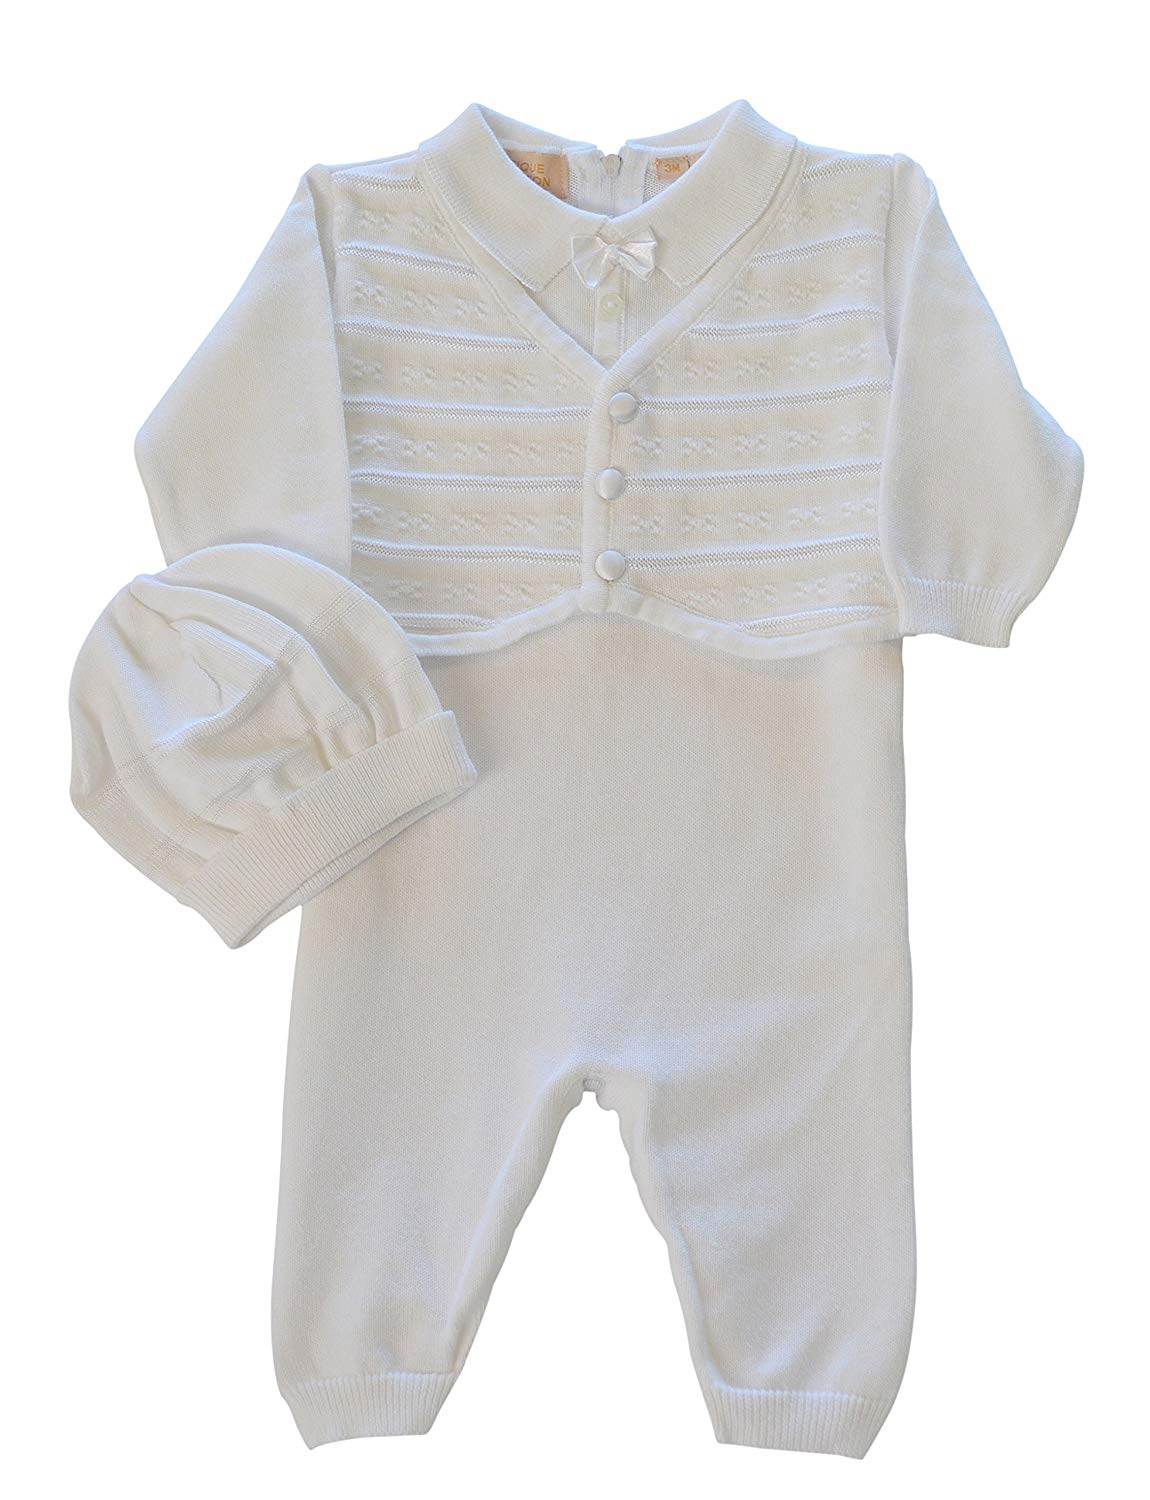 f632f55d8 Get Quotations · Boutique Collection Baby Boys' Christening Outfit with  attached Vest and Hat